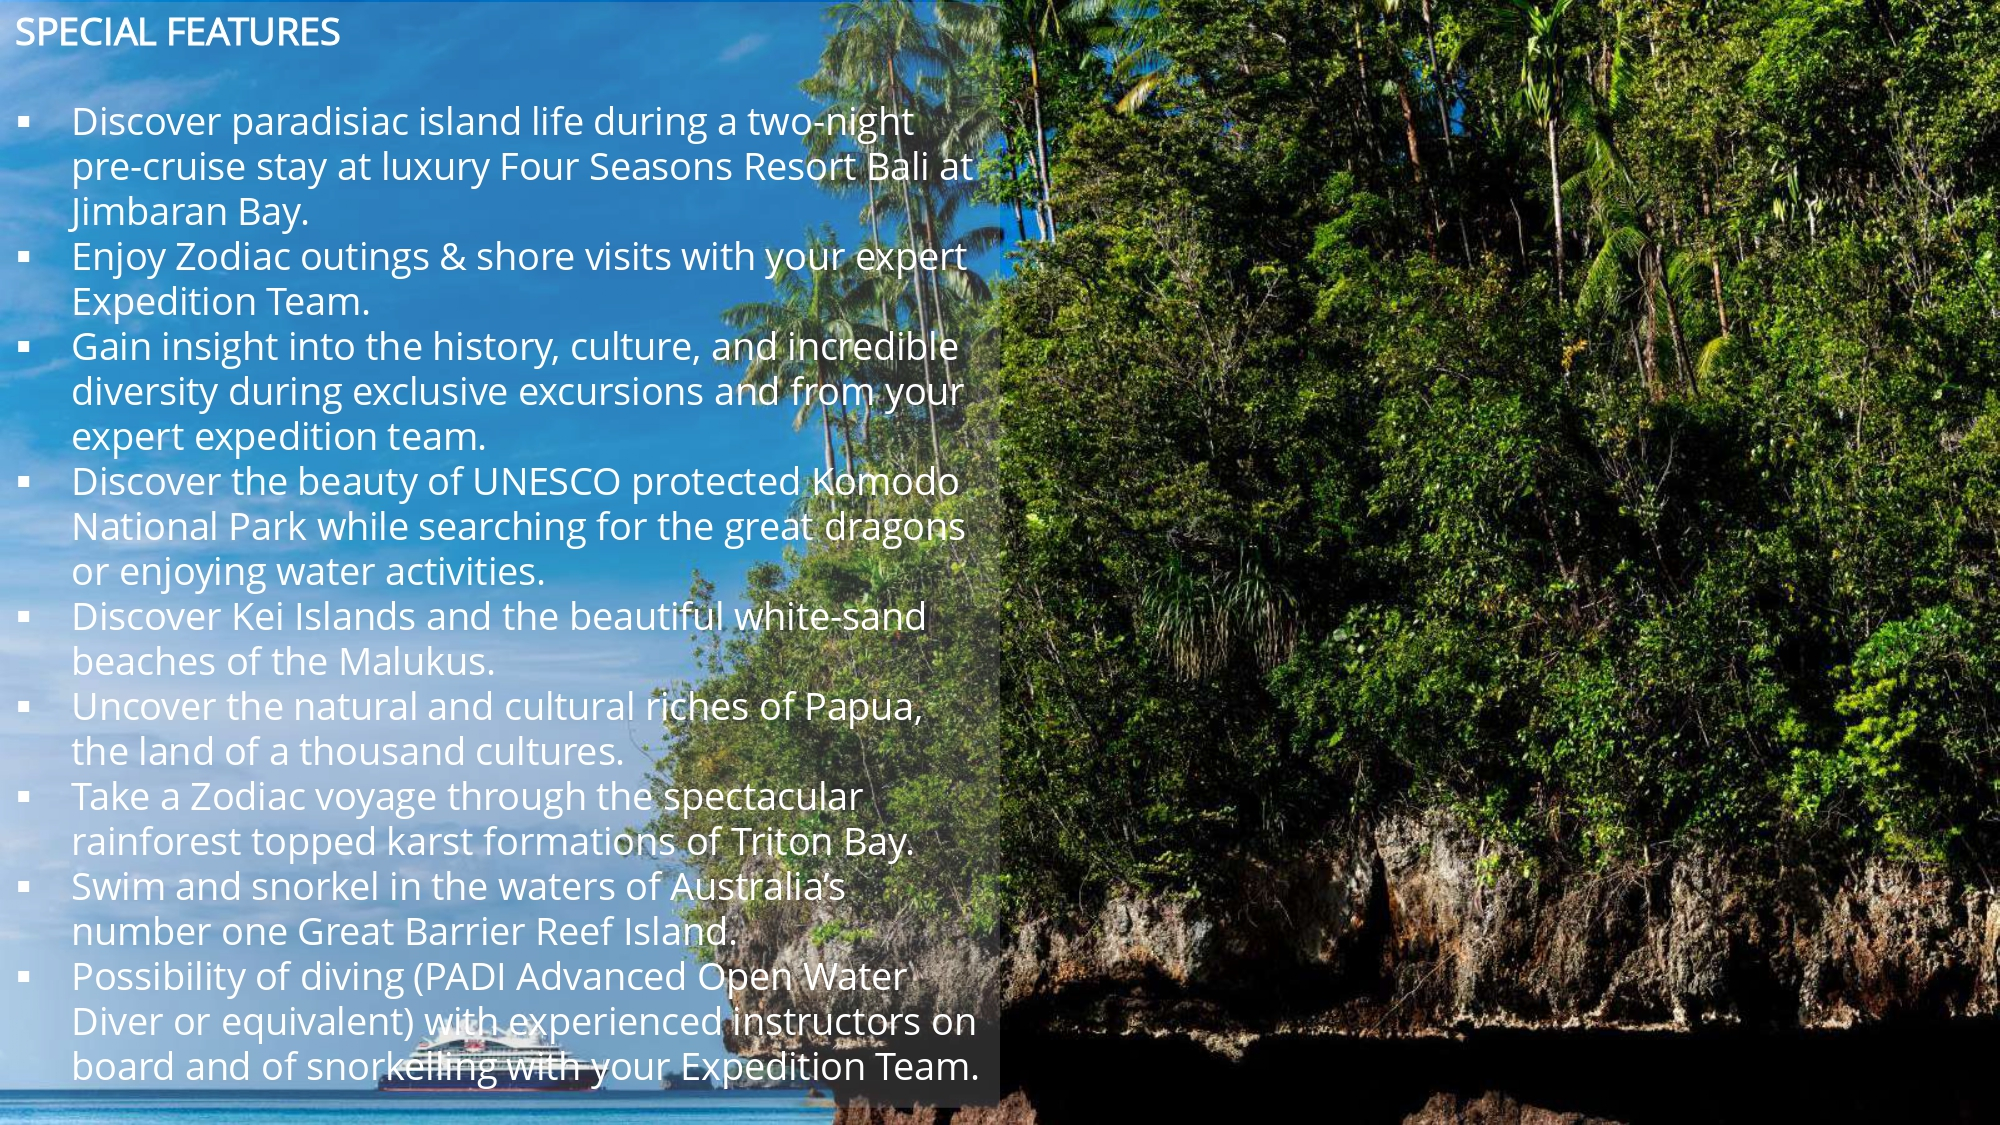 2022, 21 Nov to 7 Dec - South Pacific Voyage, Papua & Great Barrier Reef_page-0005